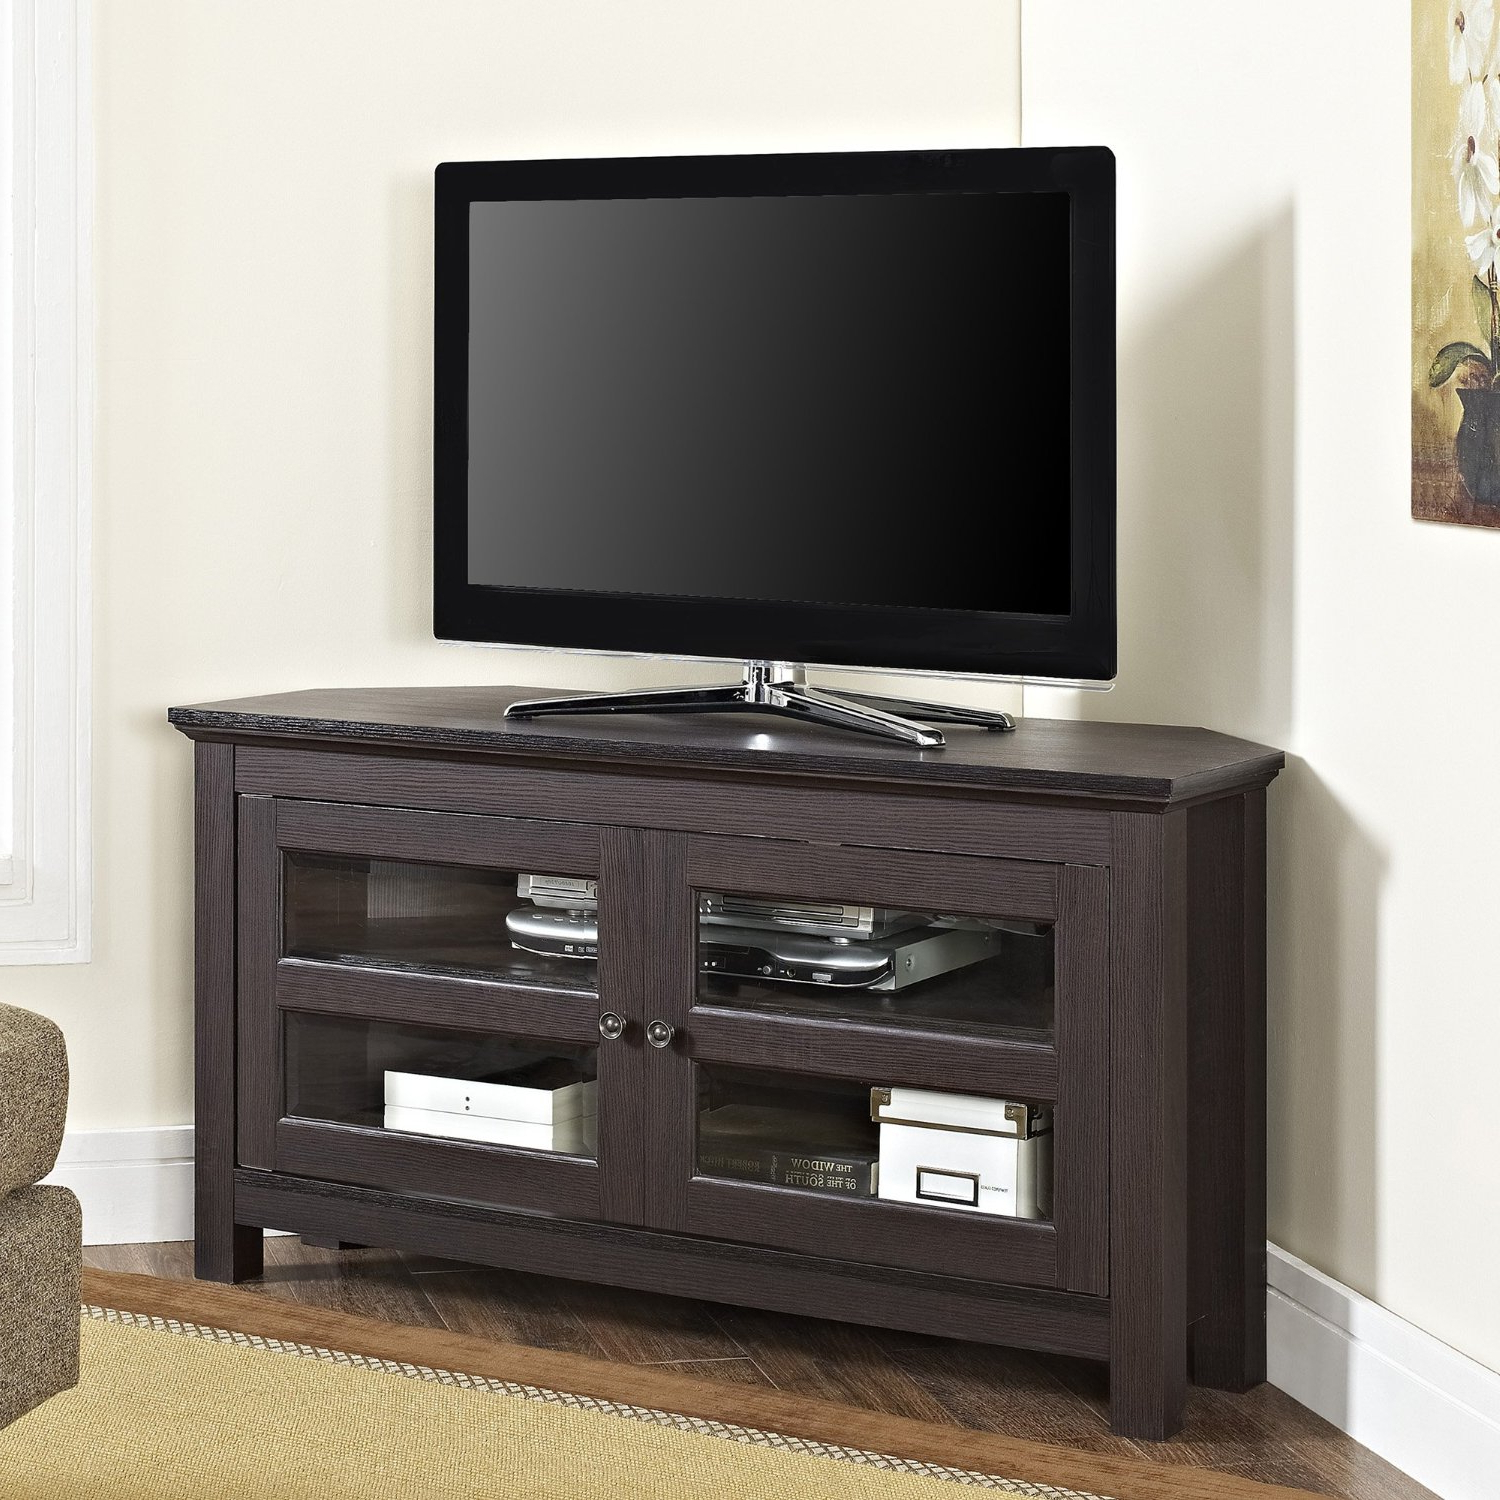 Favorite 50 Inch Corner Tv Cabinets Within Oak Corner Tv Stand For 50 Inch Walmart Cabinet 60 Hooker Black (View 10 of 20)